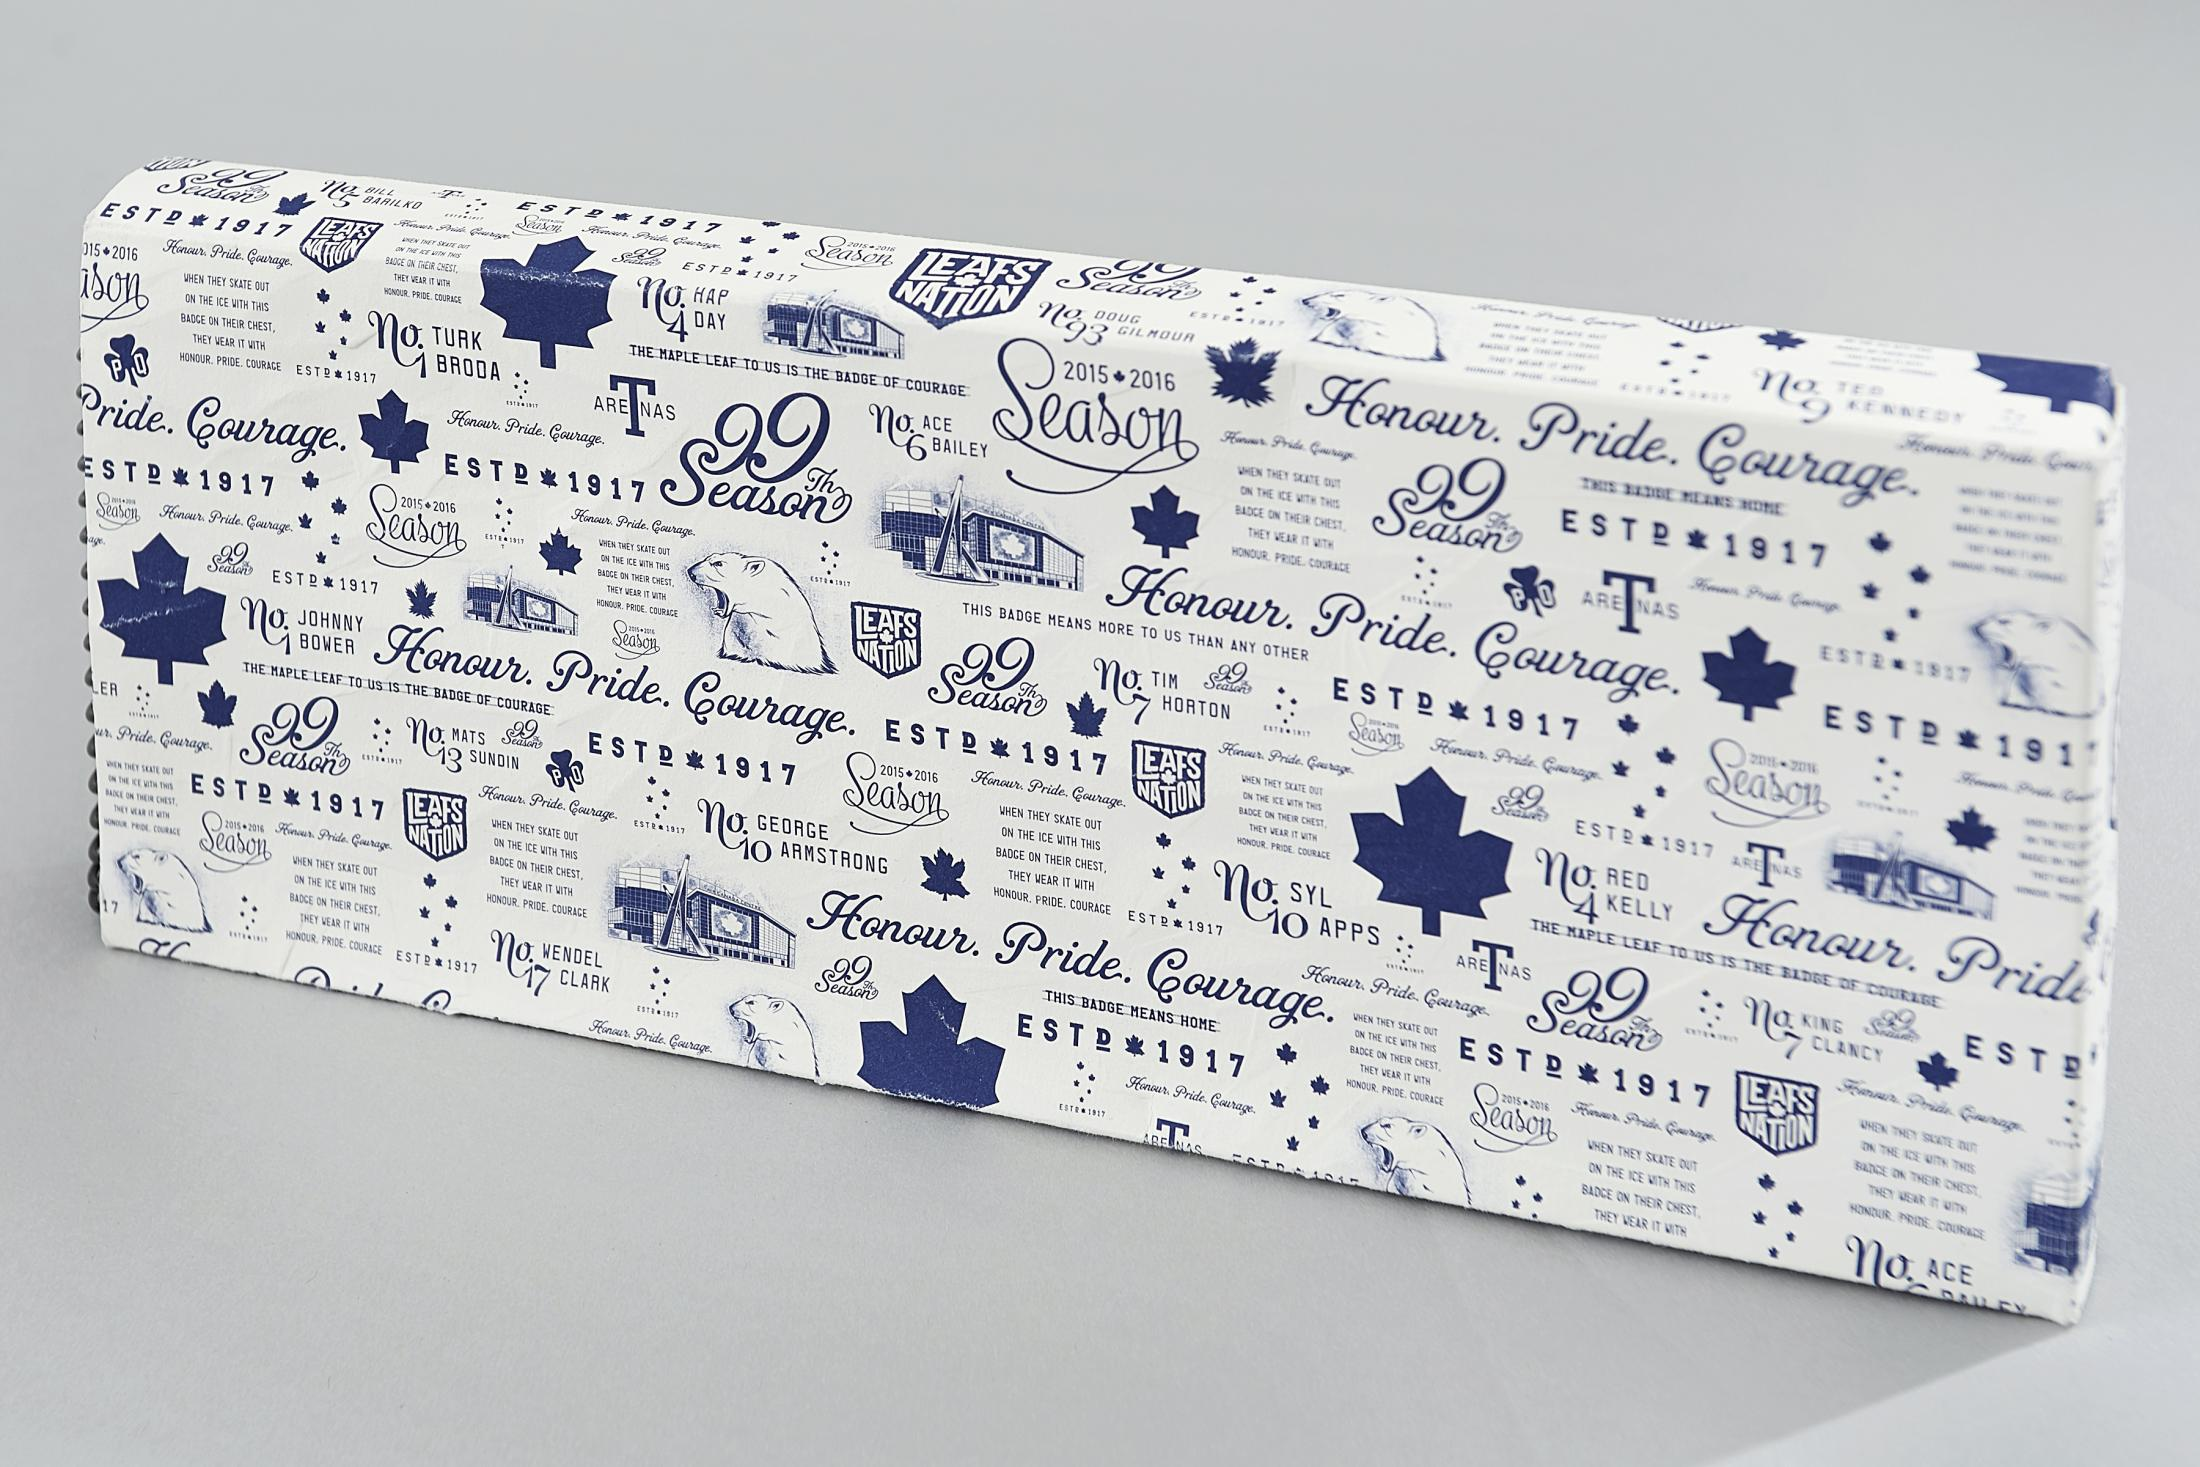 Thumbnail for Toronto Maple Leafs 2015-2016 Season Ticket Package